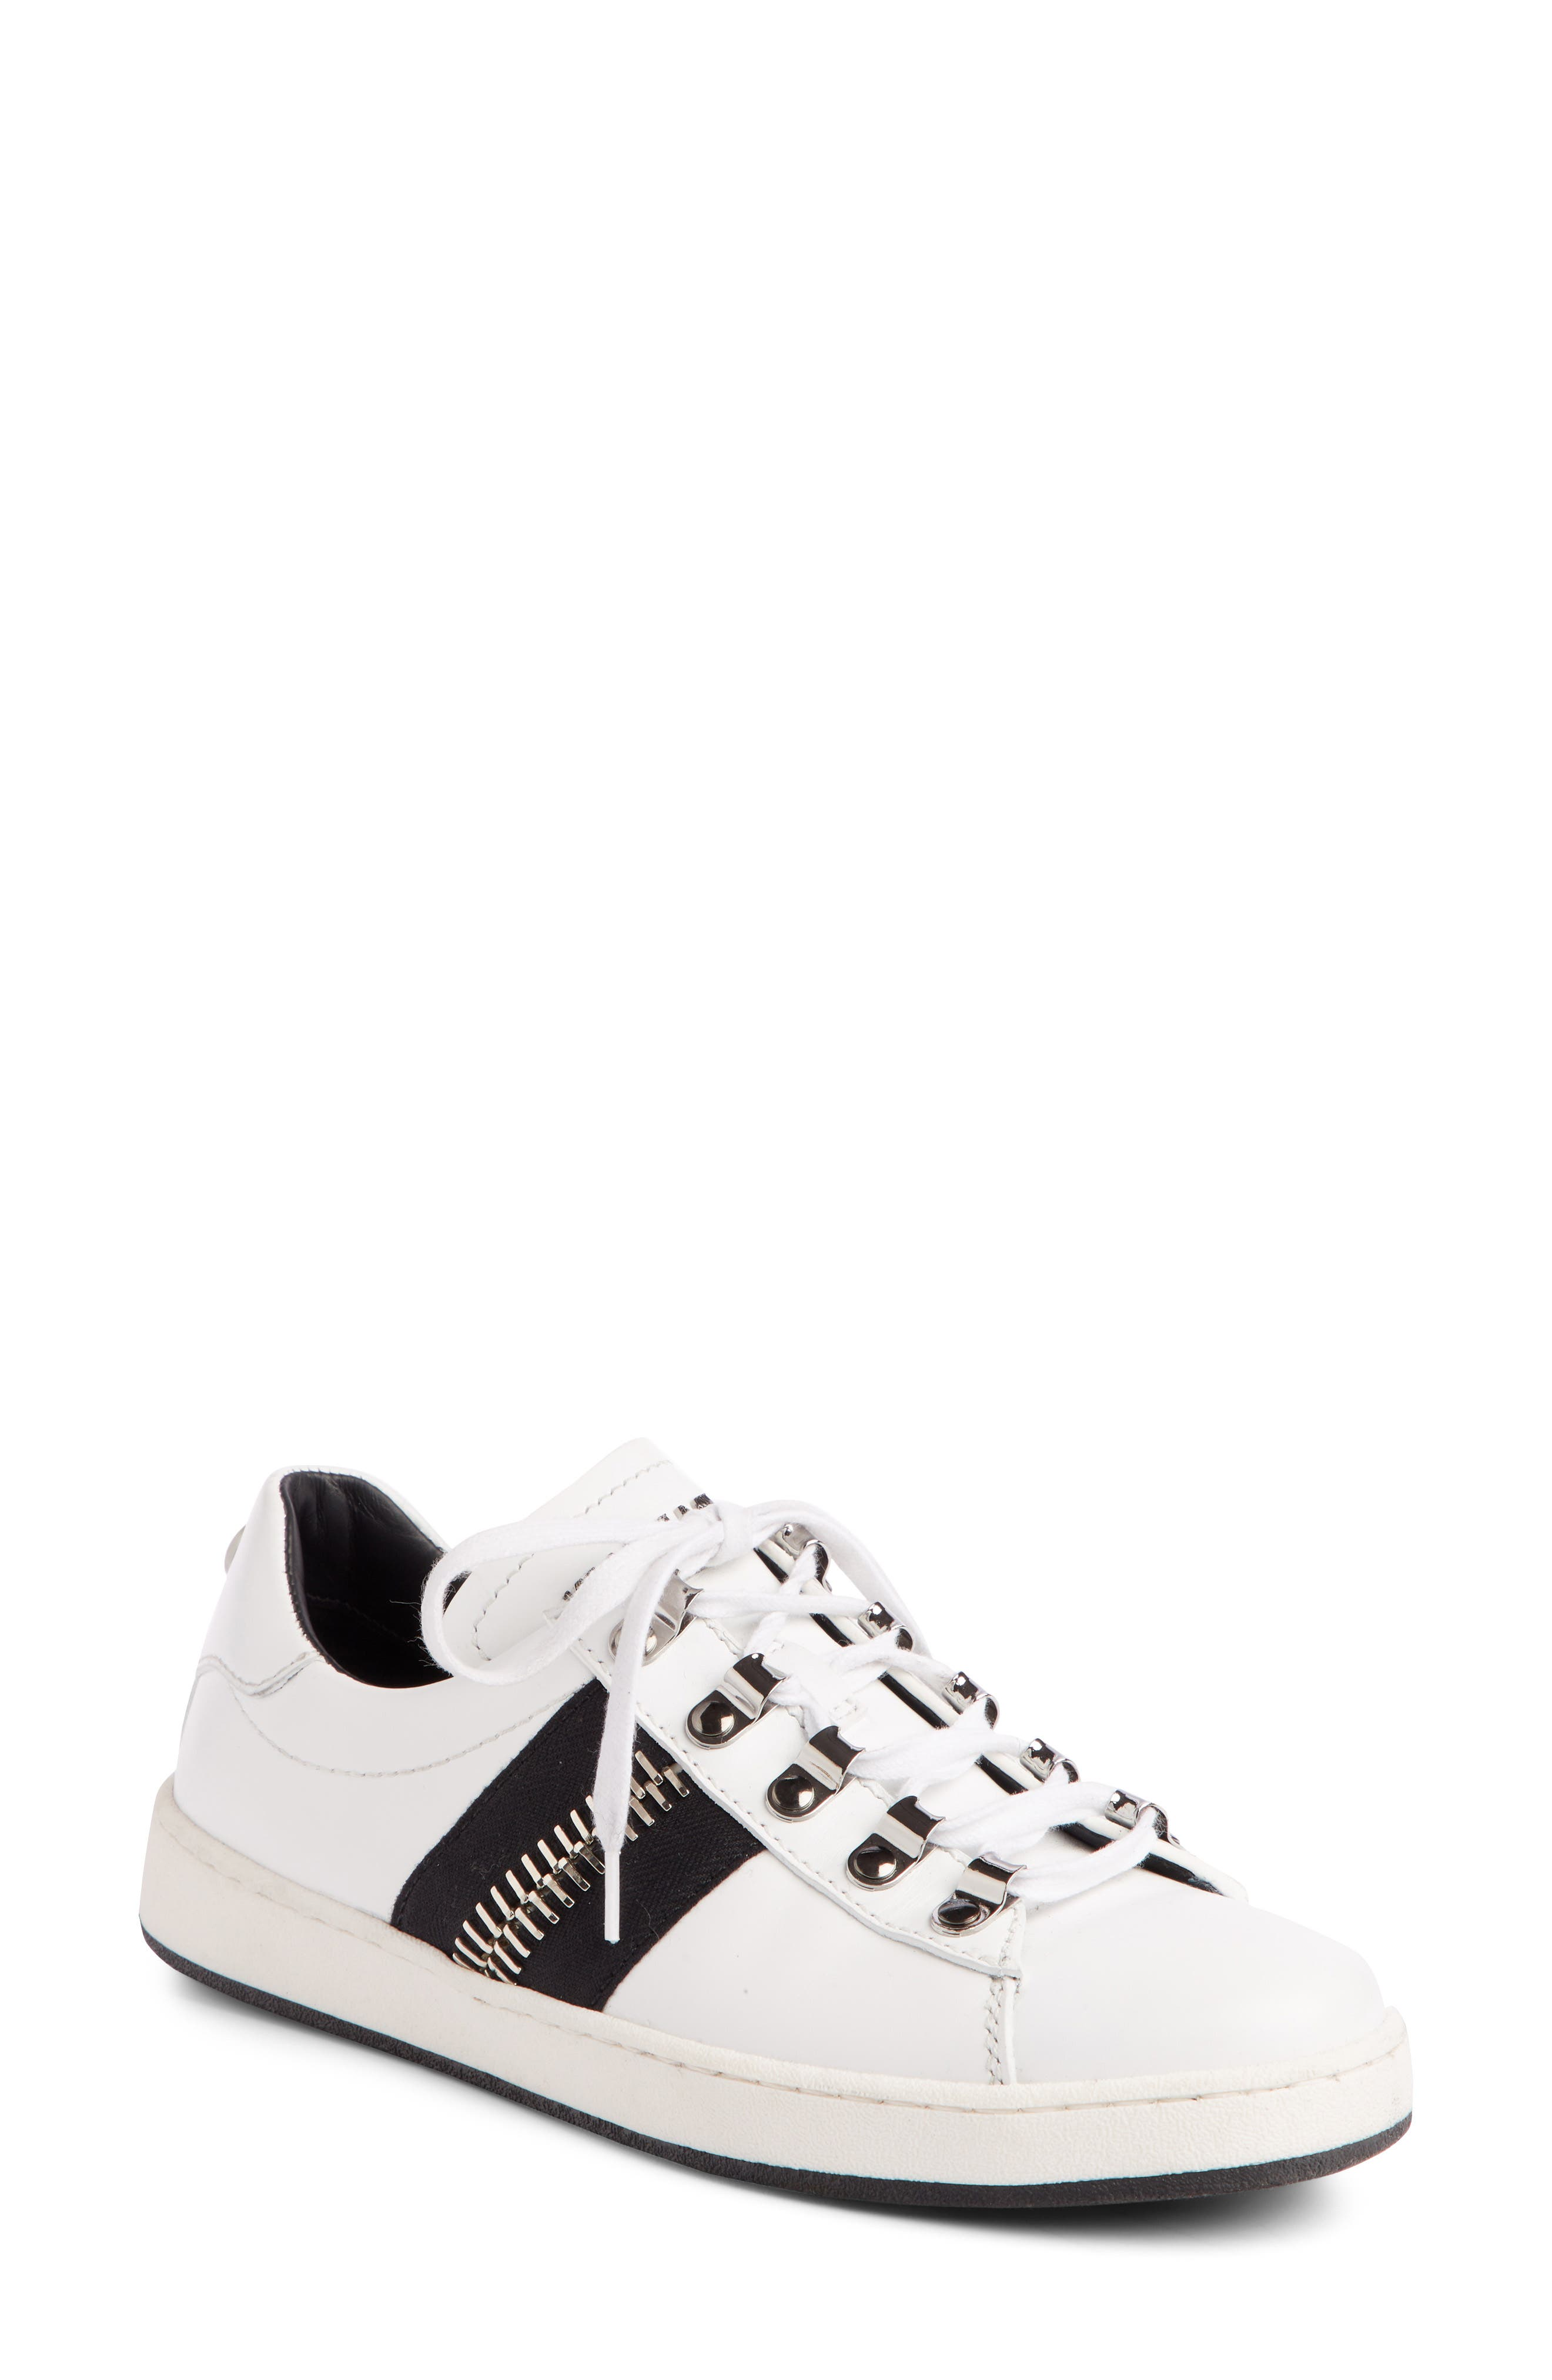 Esther Low Top Sneaker,                             Main thumbnail 1, color,                             White